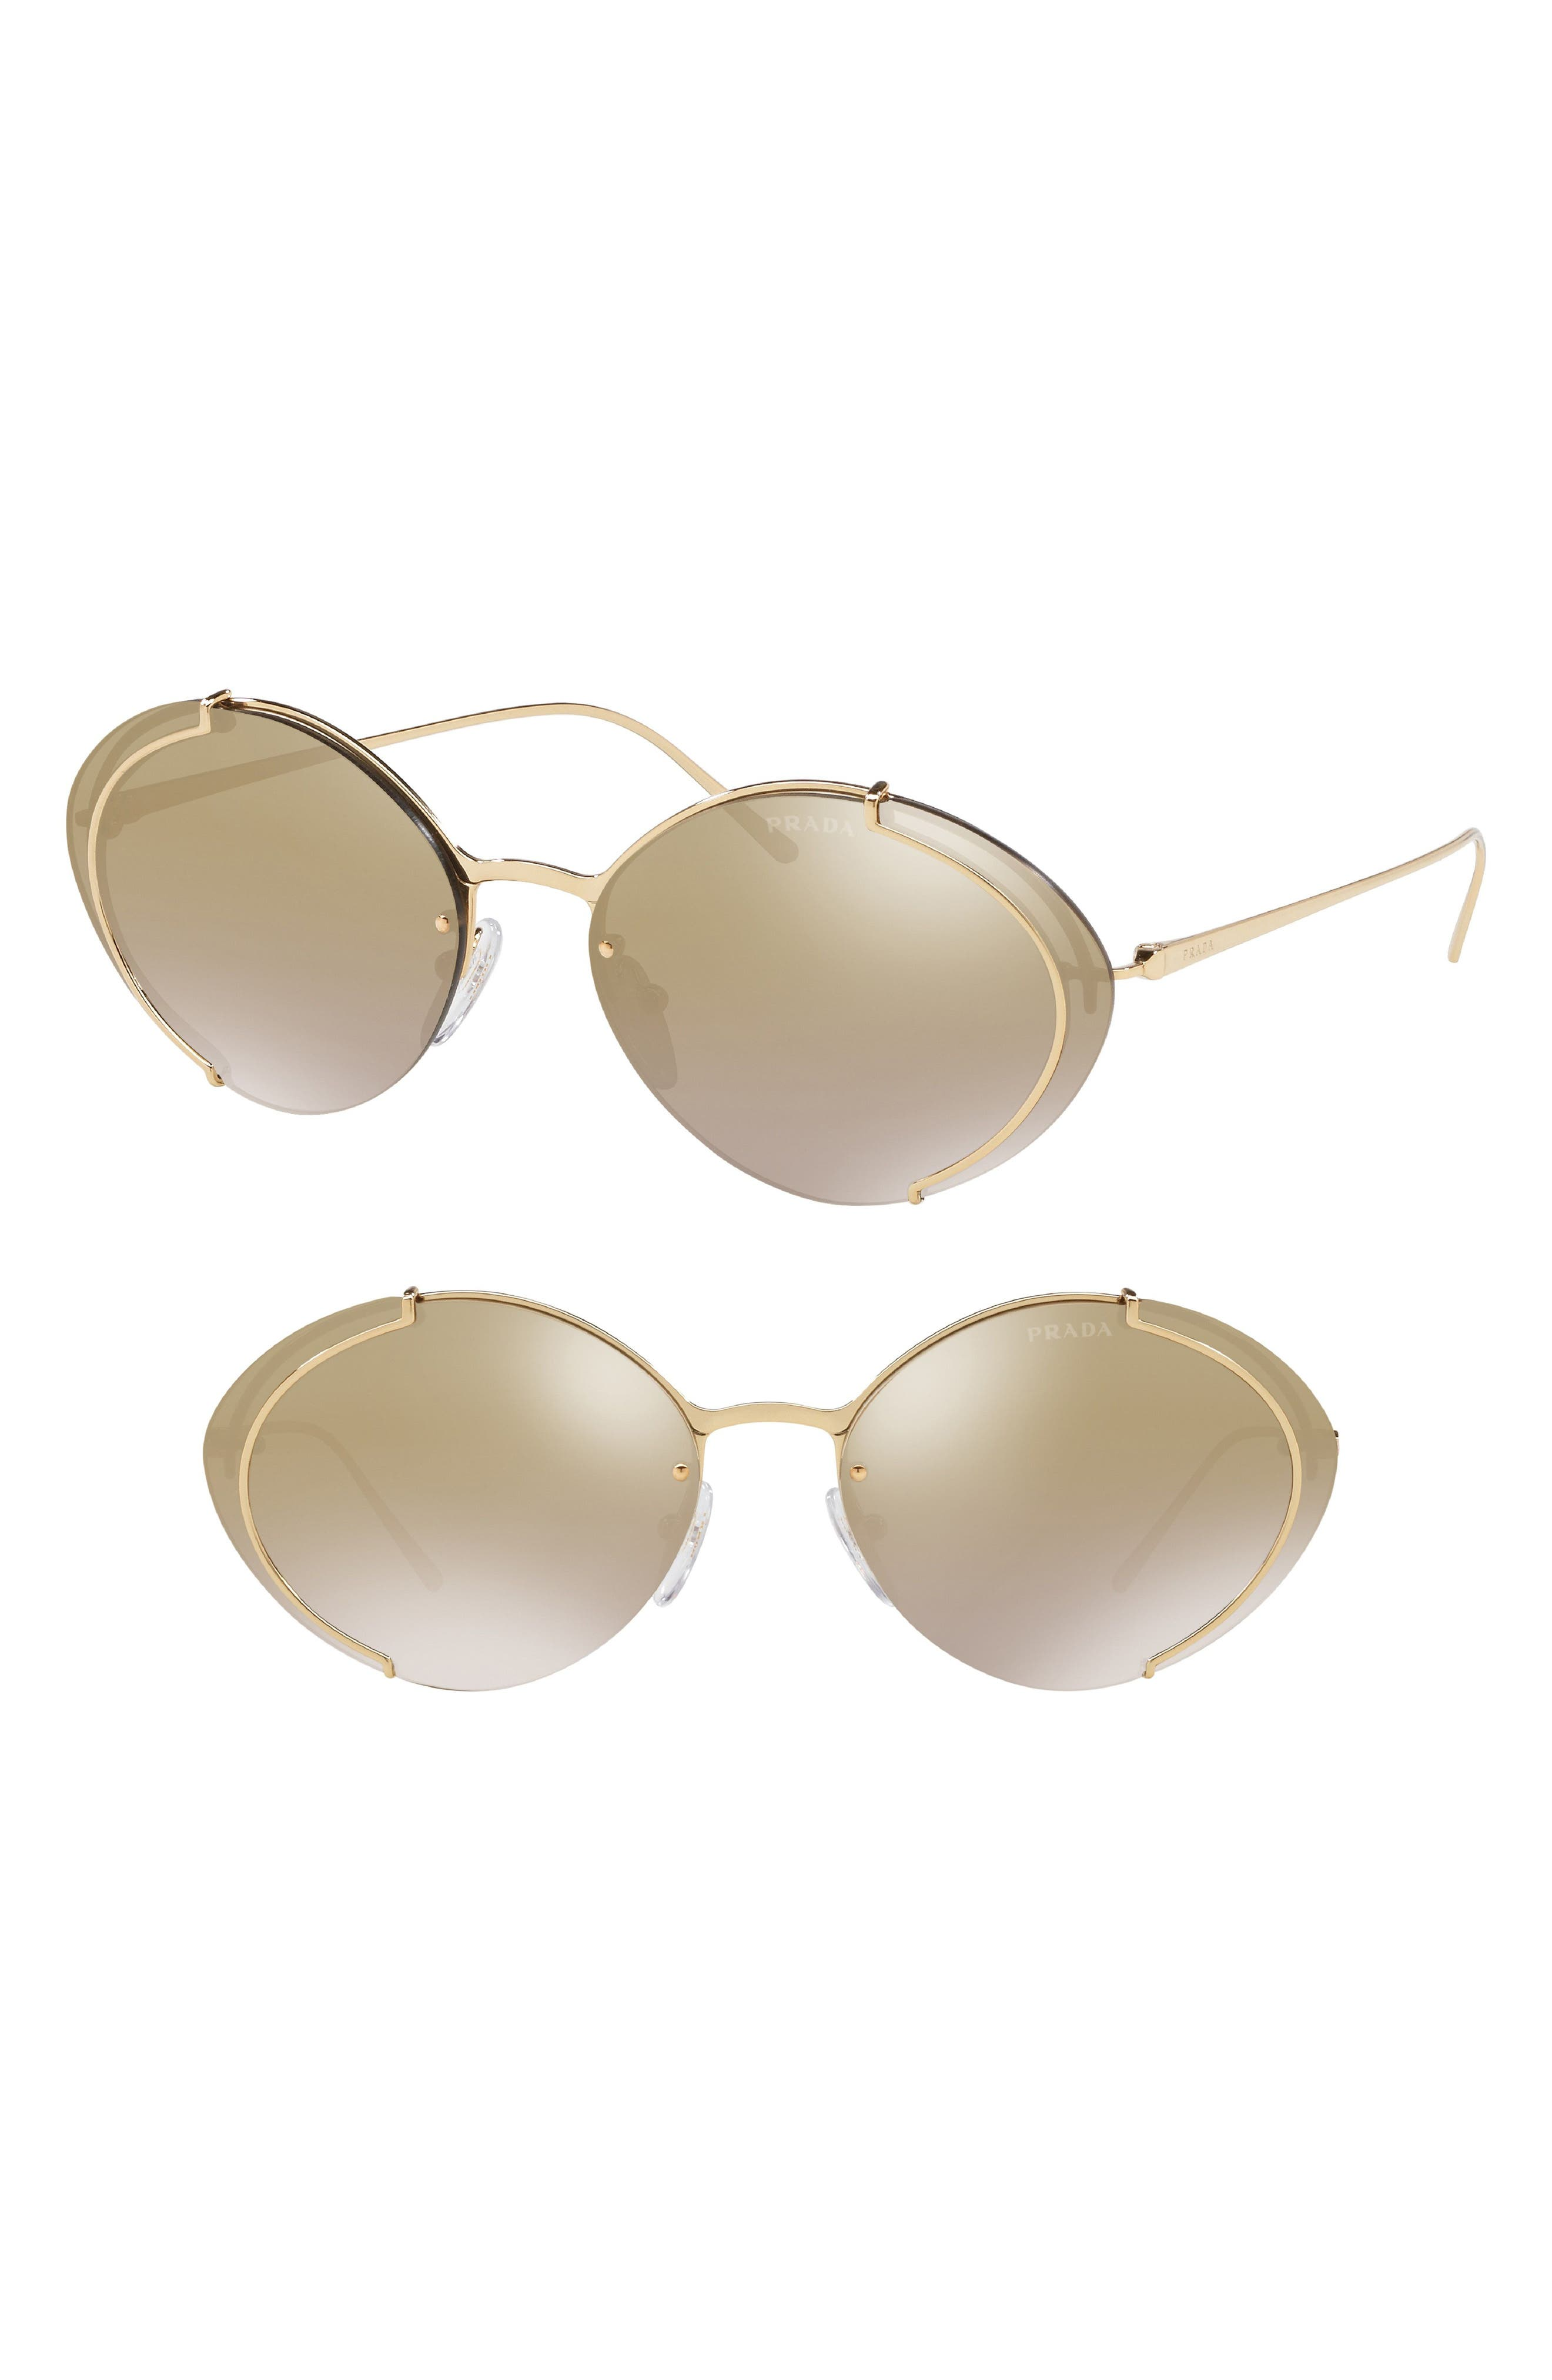 a30be5d6a9f5 Women s Sale Sunglasses   Readers